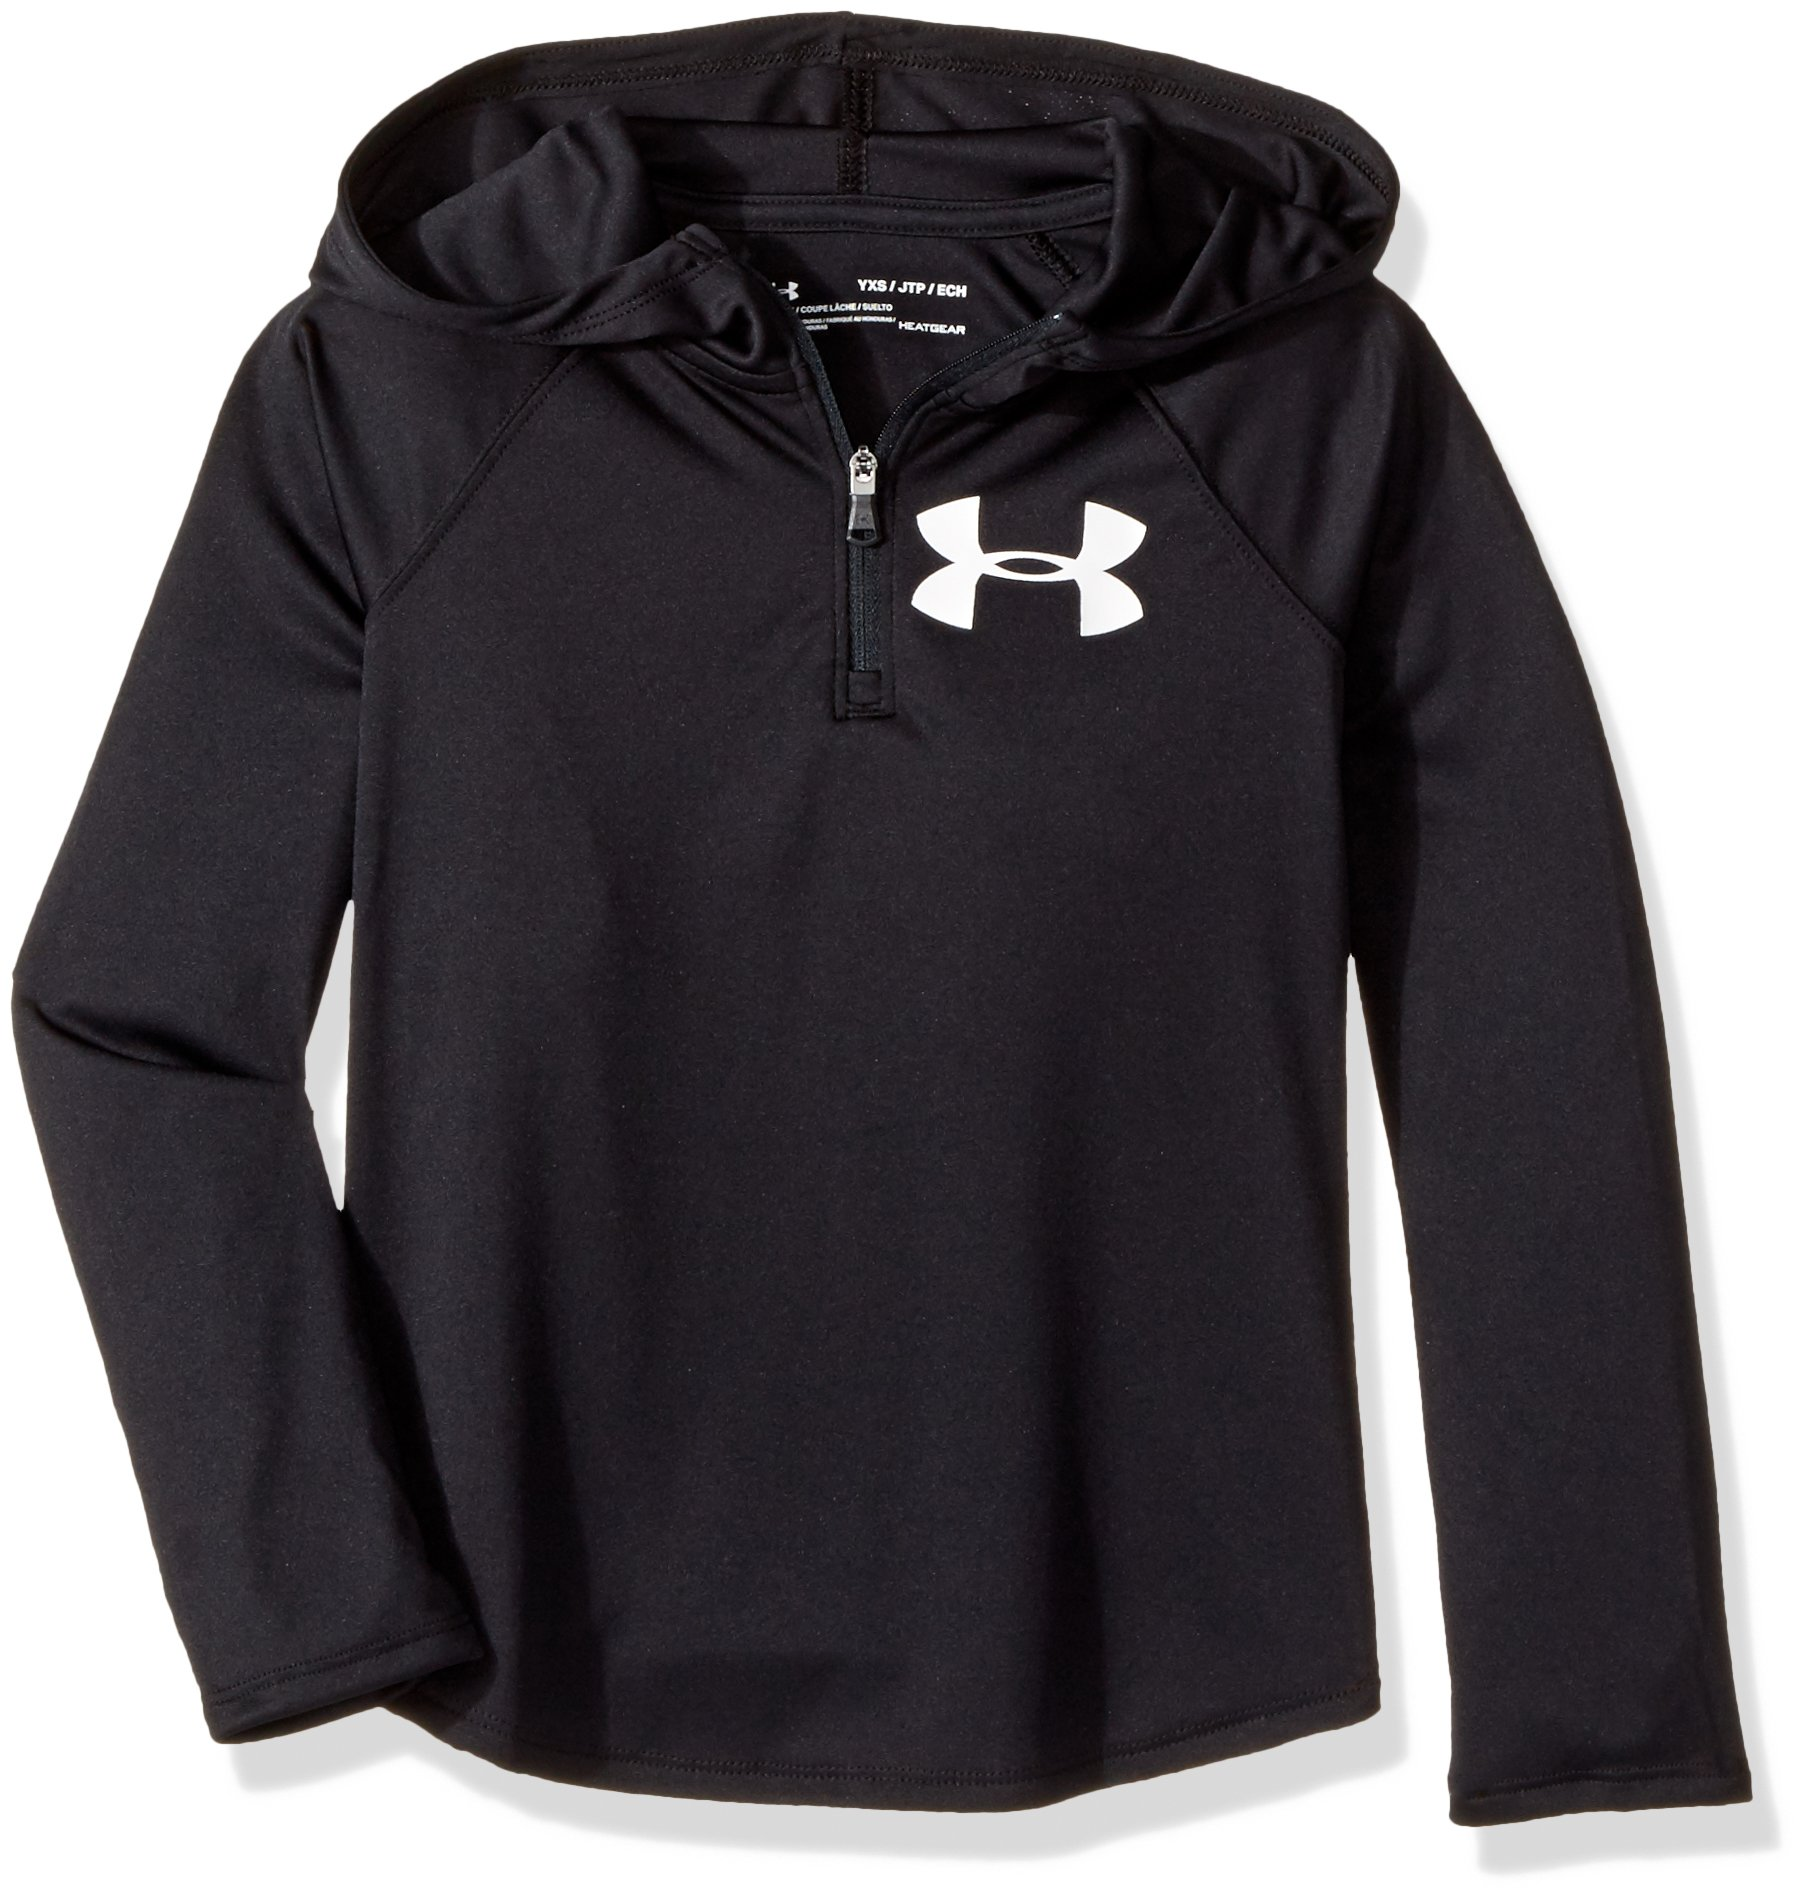 Under Armour Girls' Tech 1/4 Zip Hoody,Black (001)/White, Youth X-Small